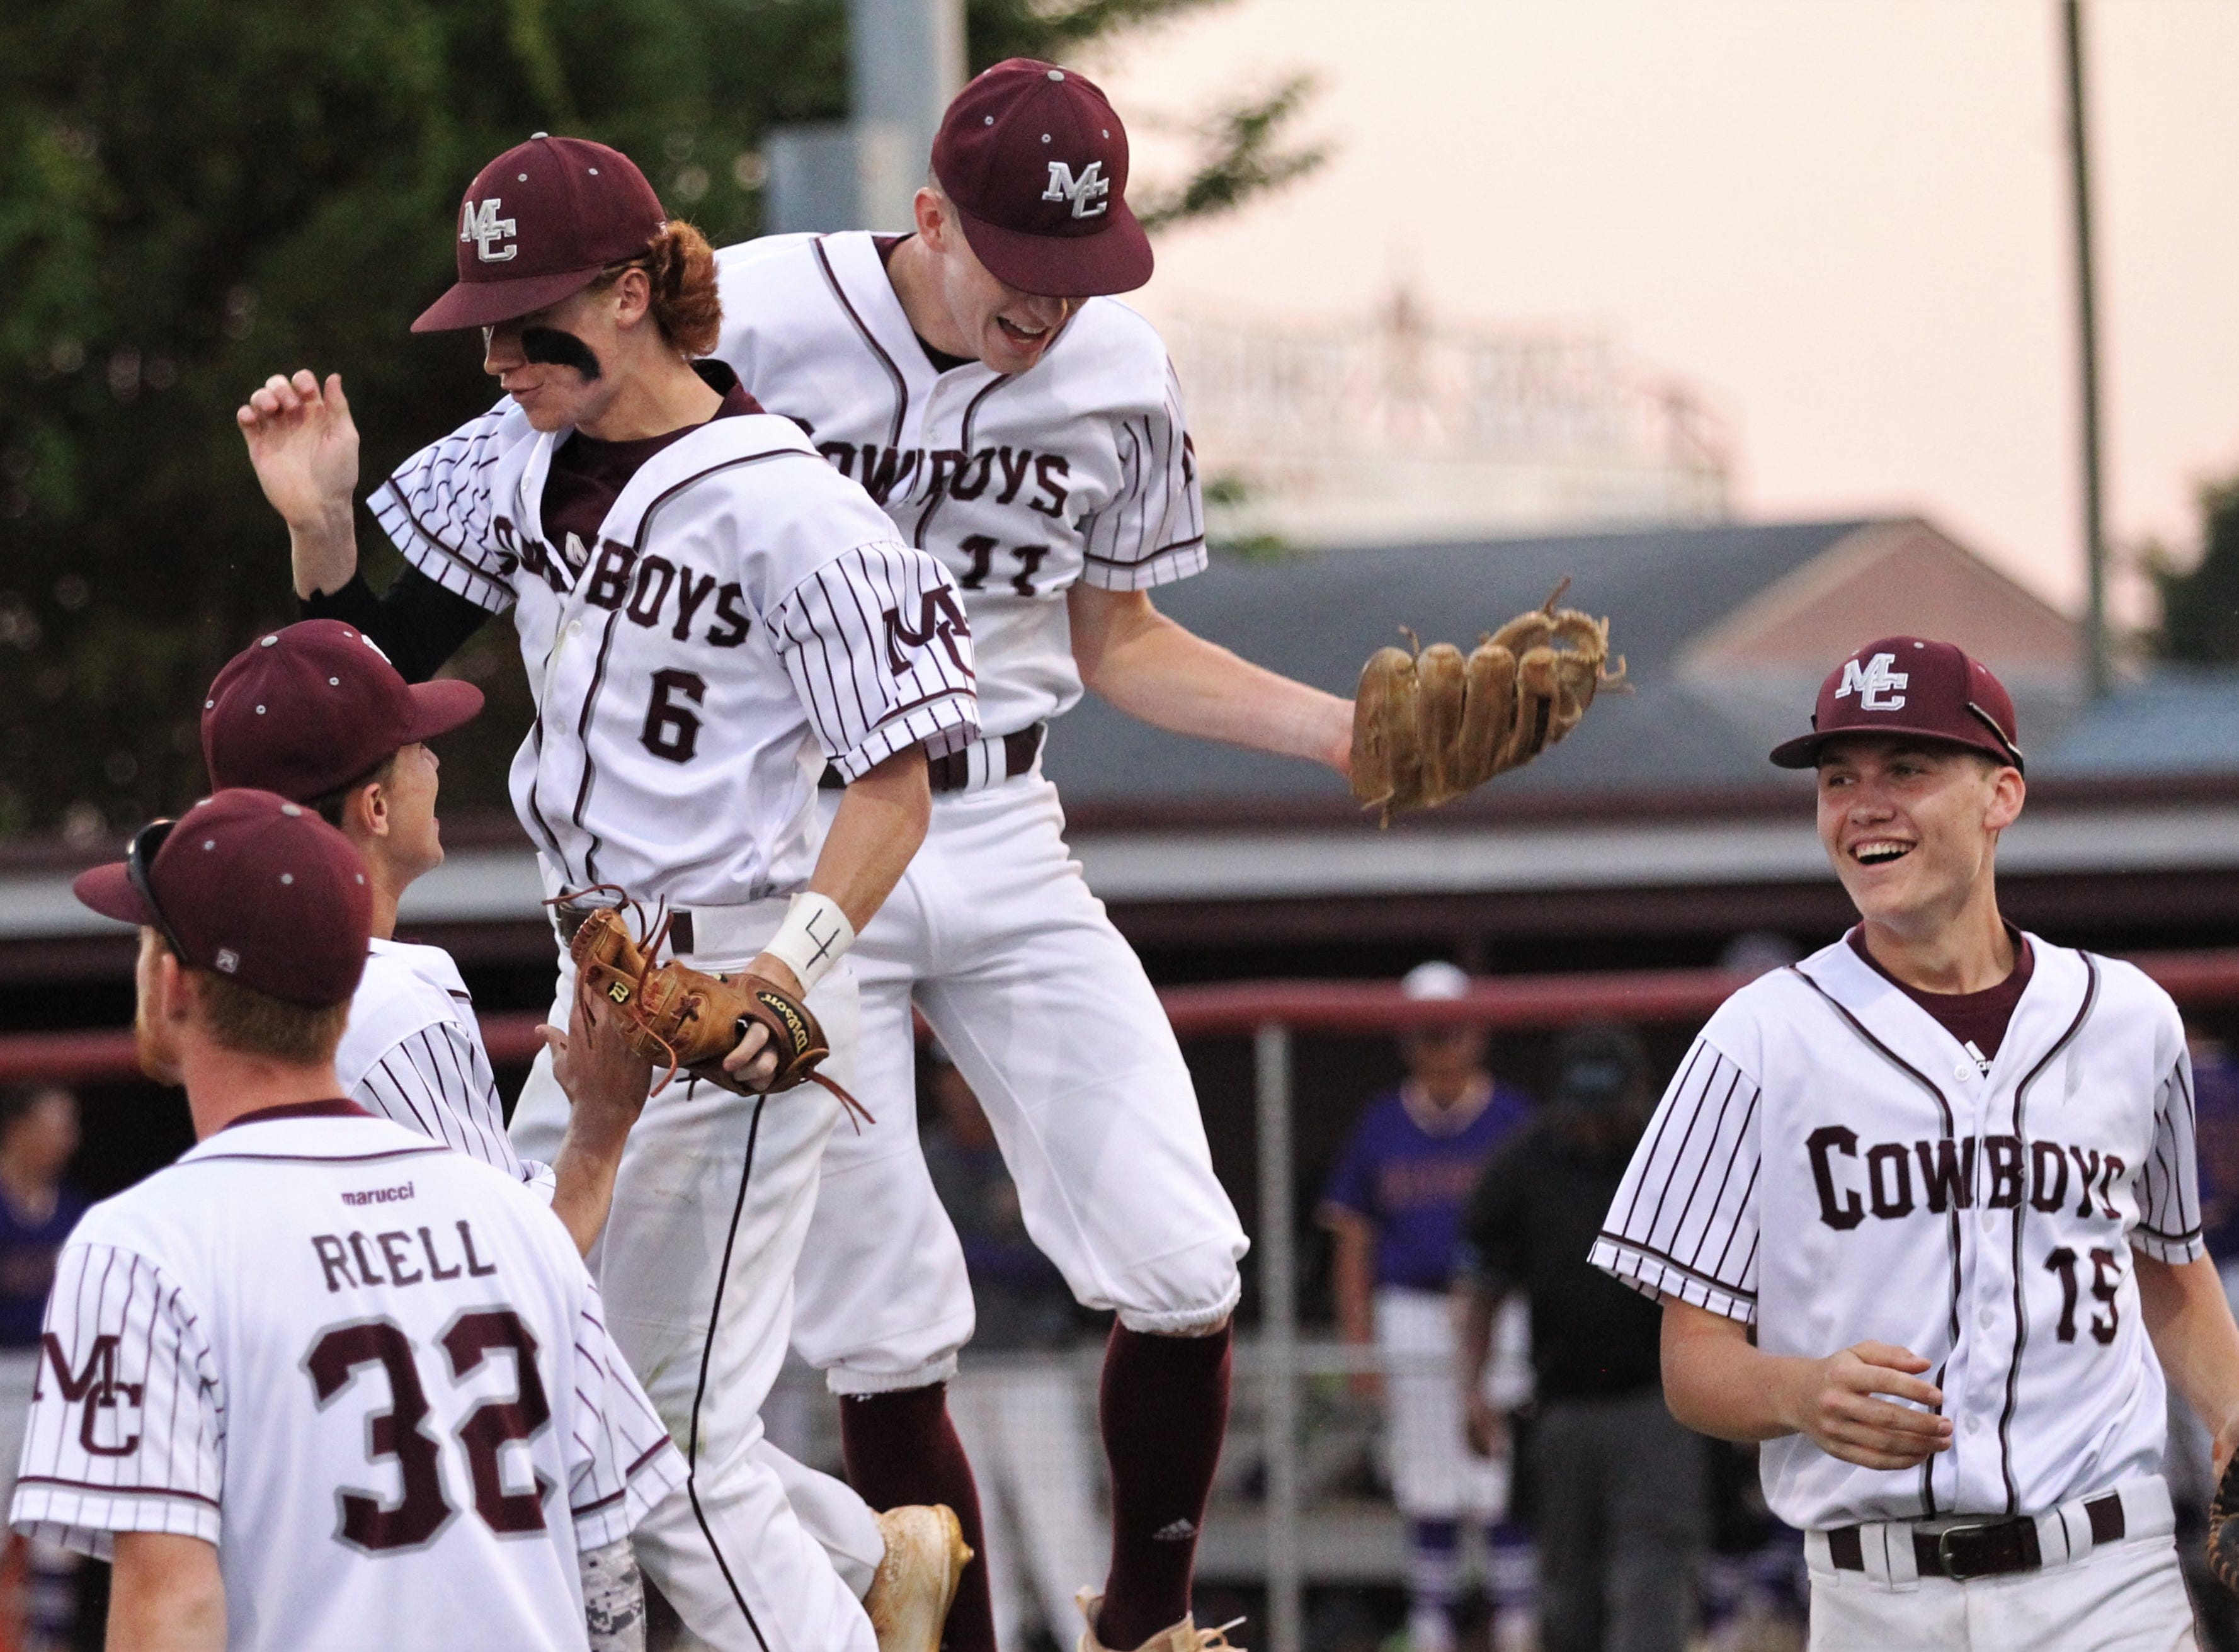 Madison County pitcher Dilan Lawson celebrates after making an important running catch in the sixth inning as the Cowboys beat Union County 1-0 during a Region 2-1A semifinal on May 14, 2019.